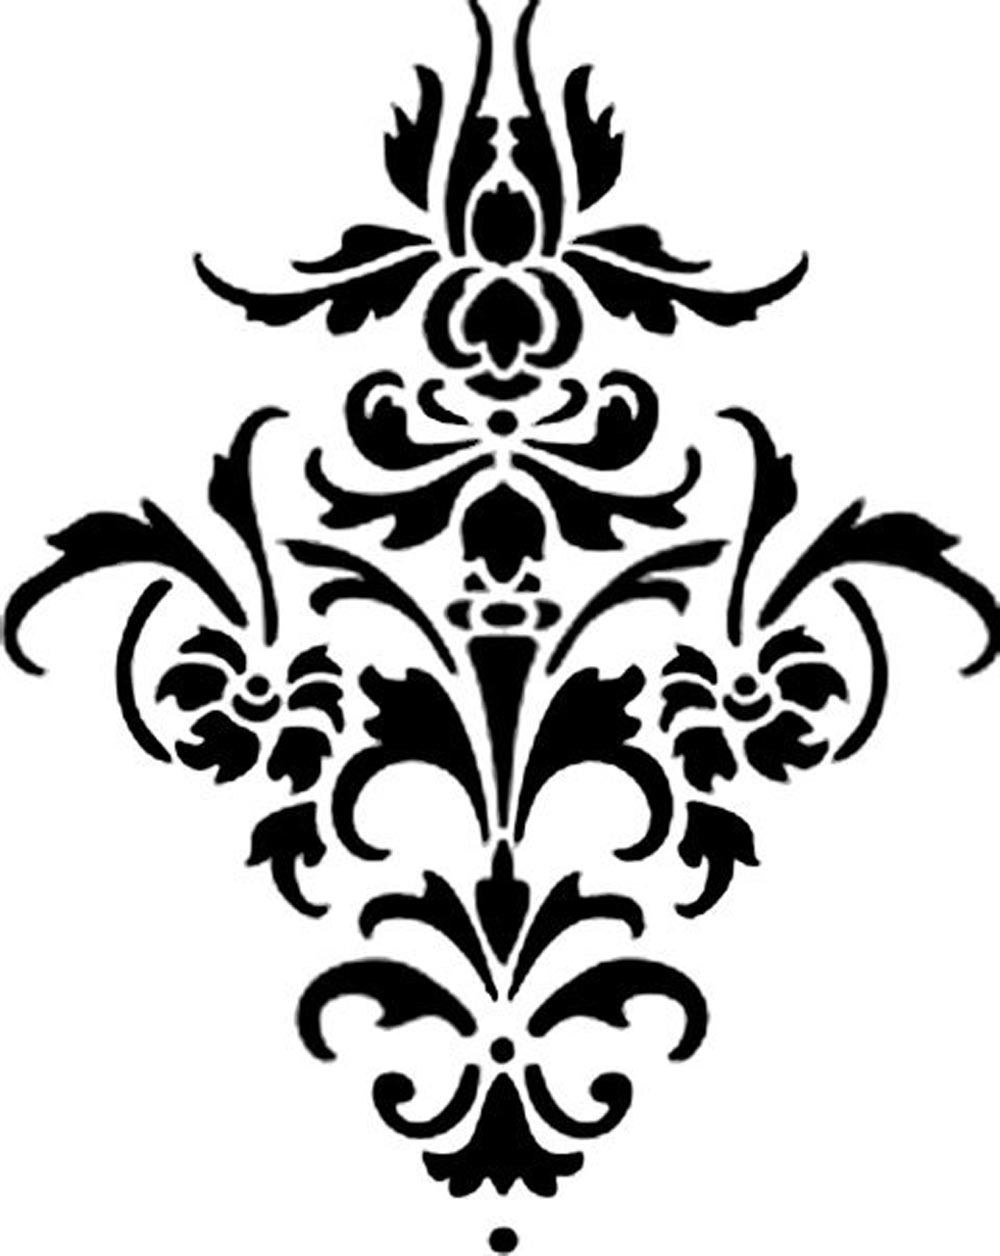 Damask clipart flourishes Download Clip Damask Free on